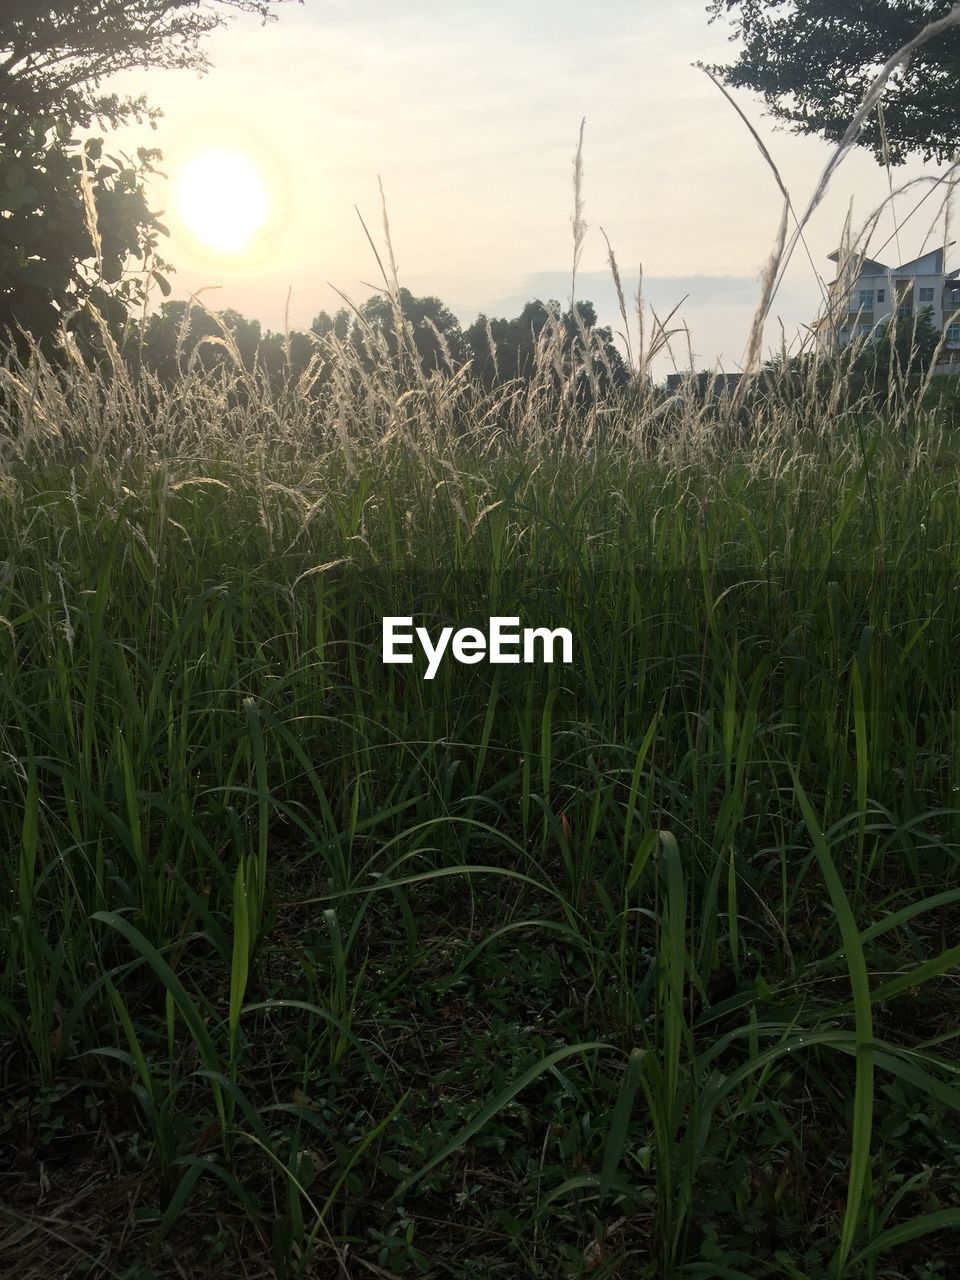 growth, field, nature, grass, outdoors, tranquil scene, plant, no people, beauty in nature, tranquility, agriculture, sunset, rural scene, scenics, landscape, day, sky, close-up, water